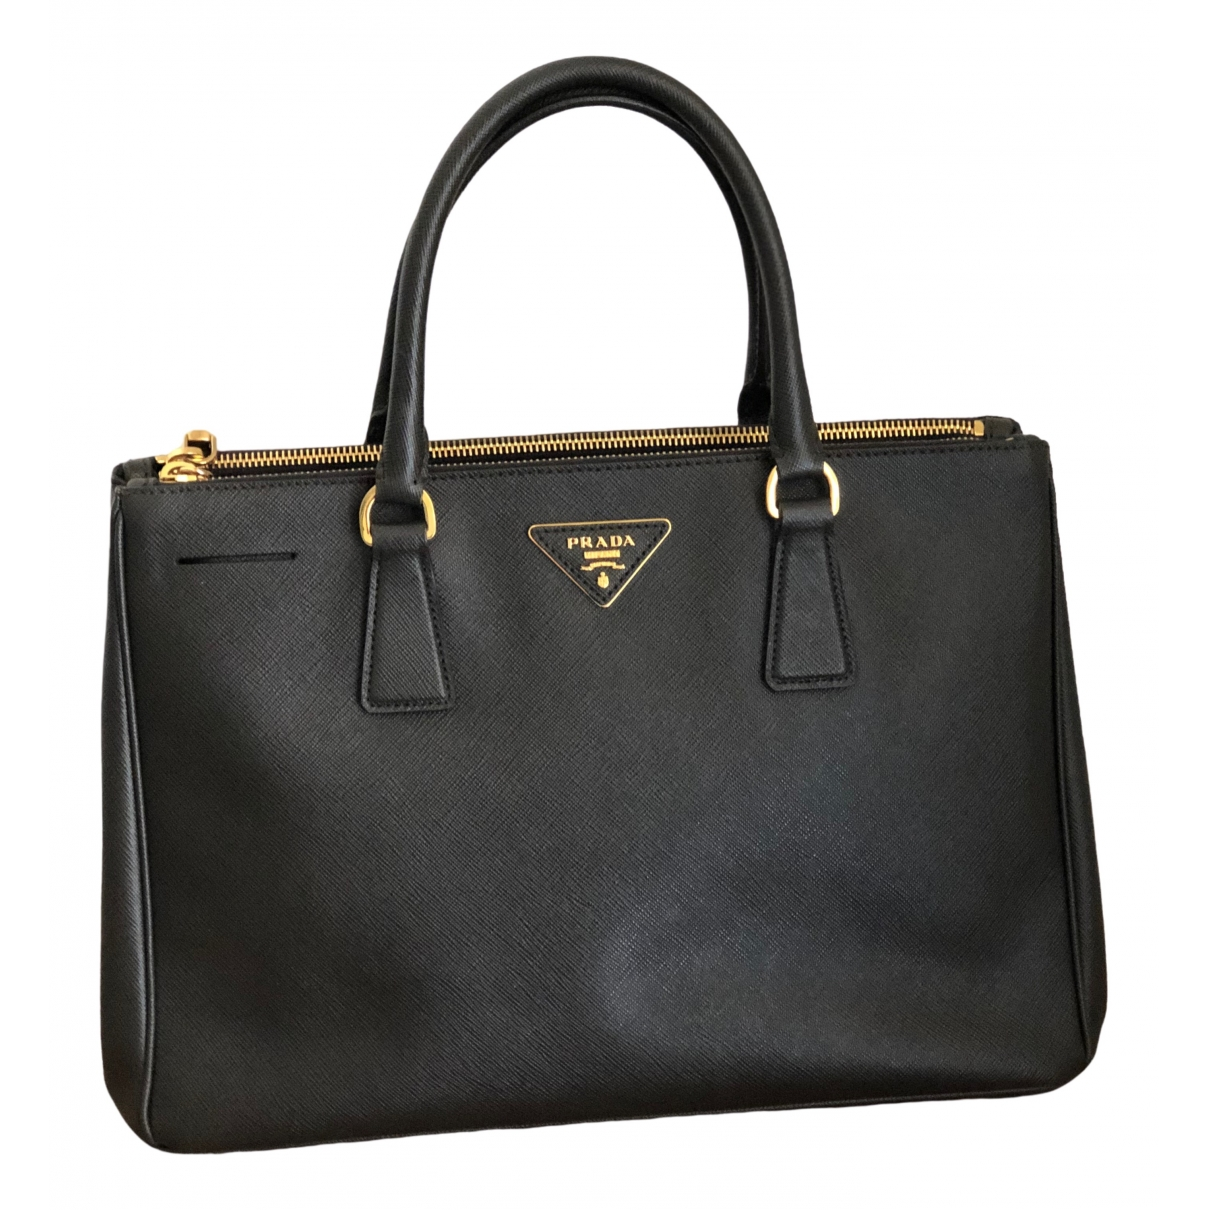 Prada Galleria Green Leather handbag for Women \N